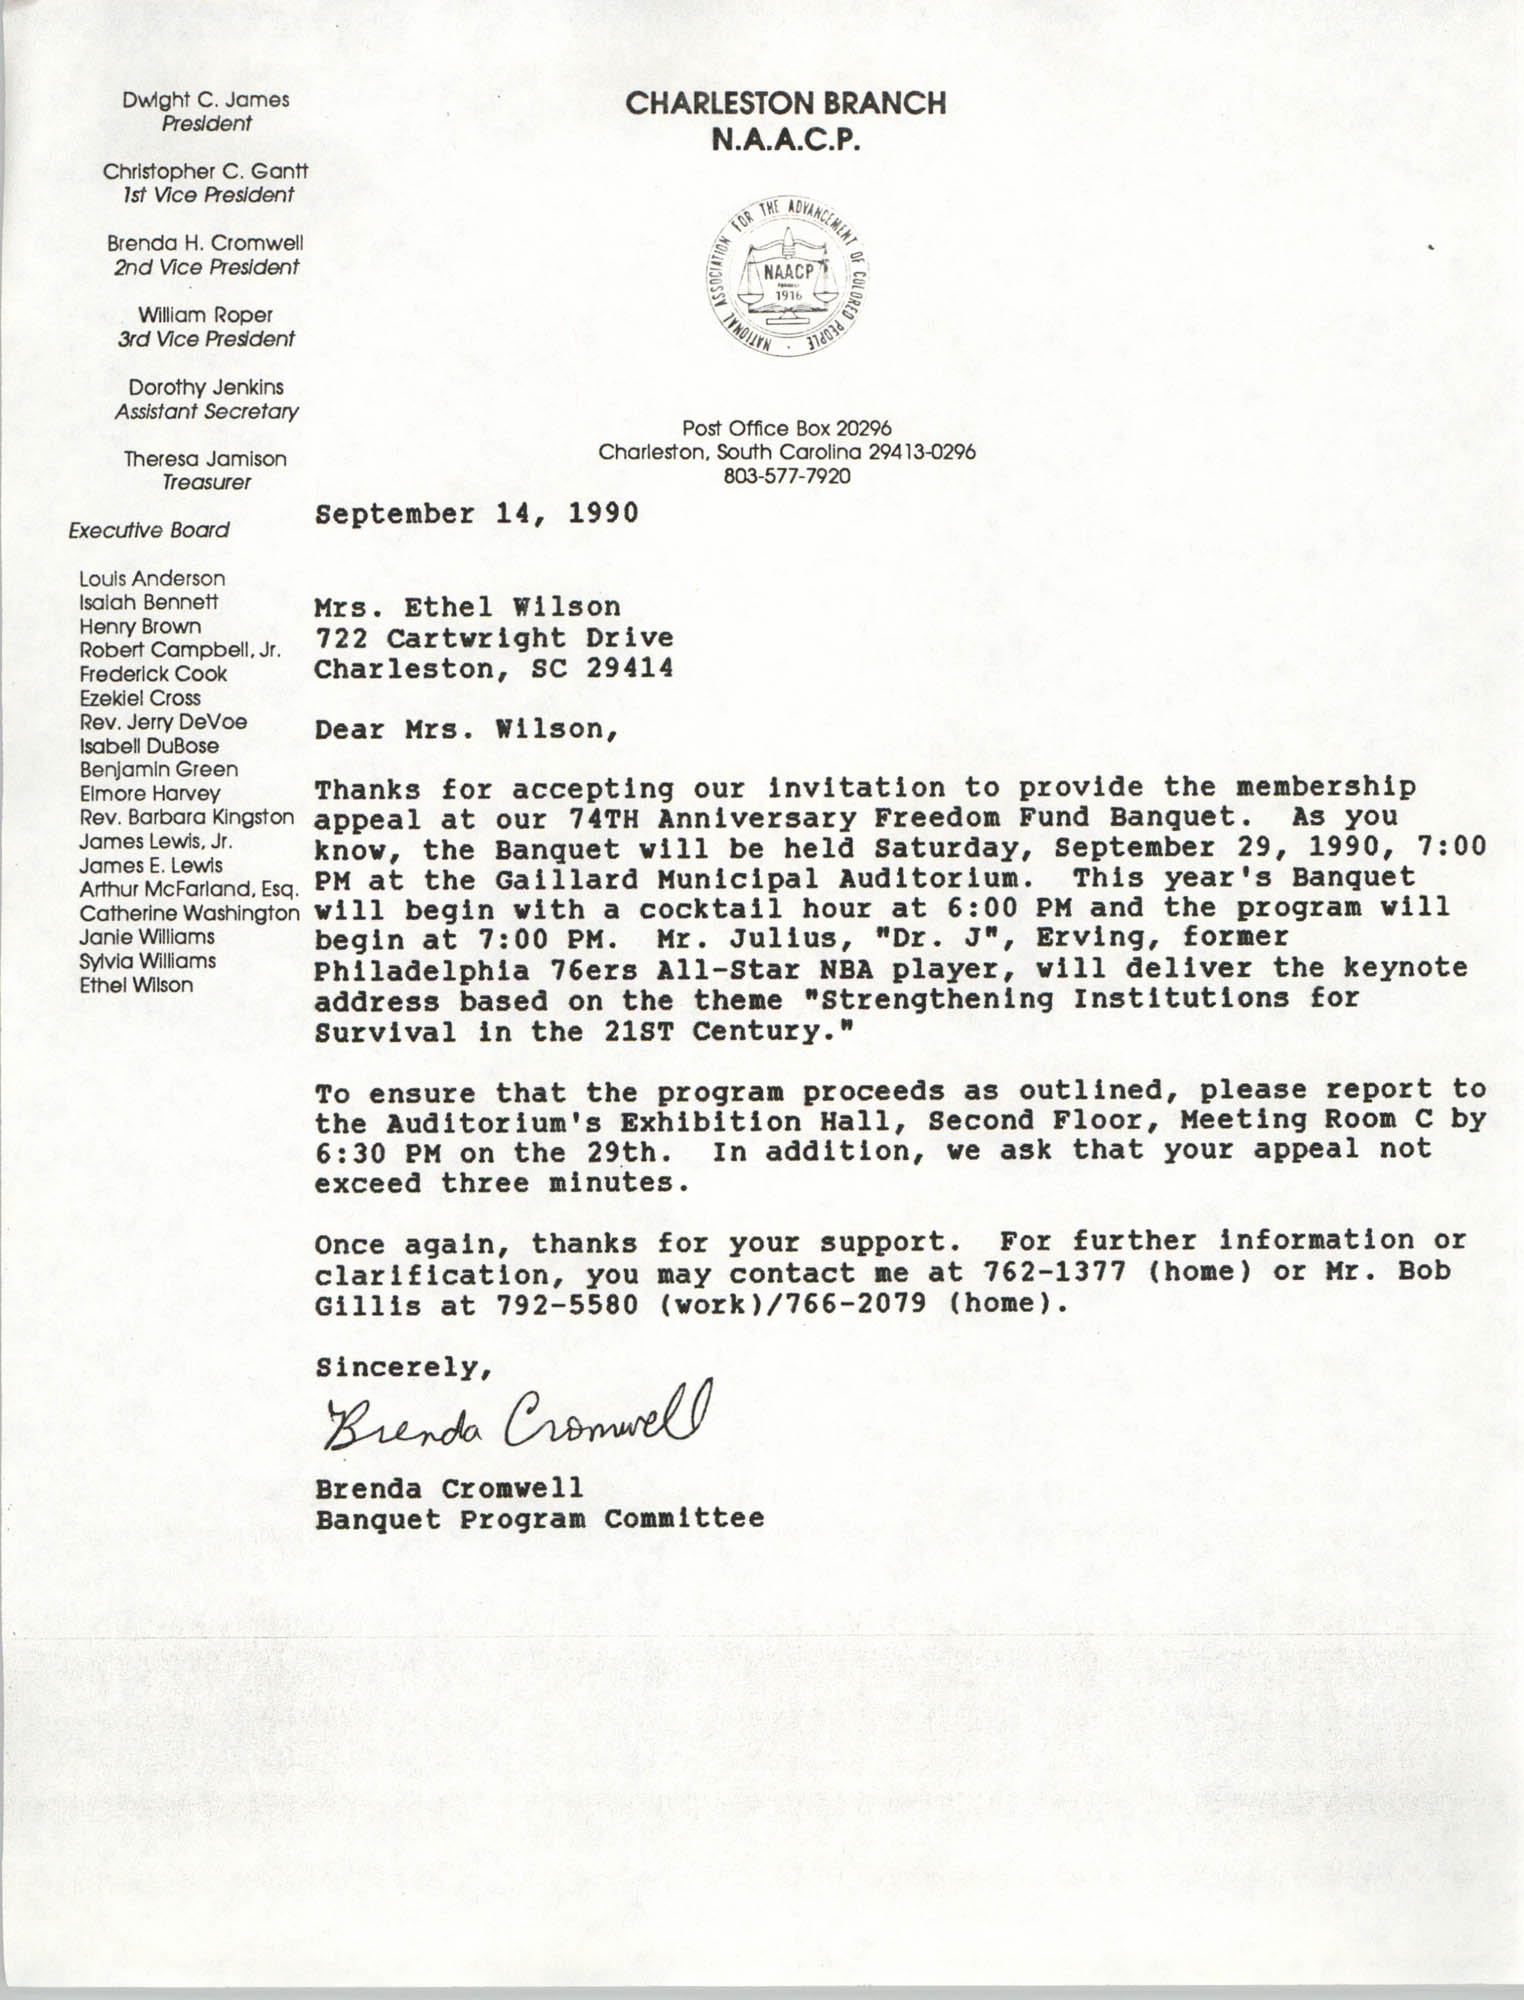 Letter from Brenda Cromwell to Ethel Wilson, September 14, 1990